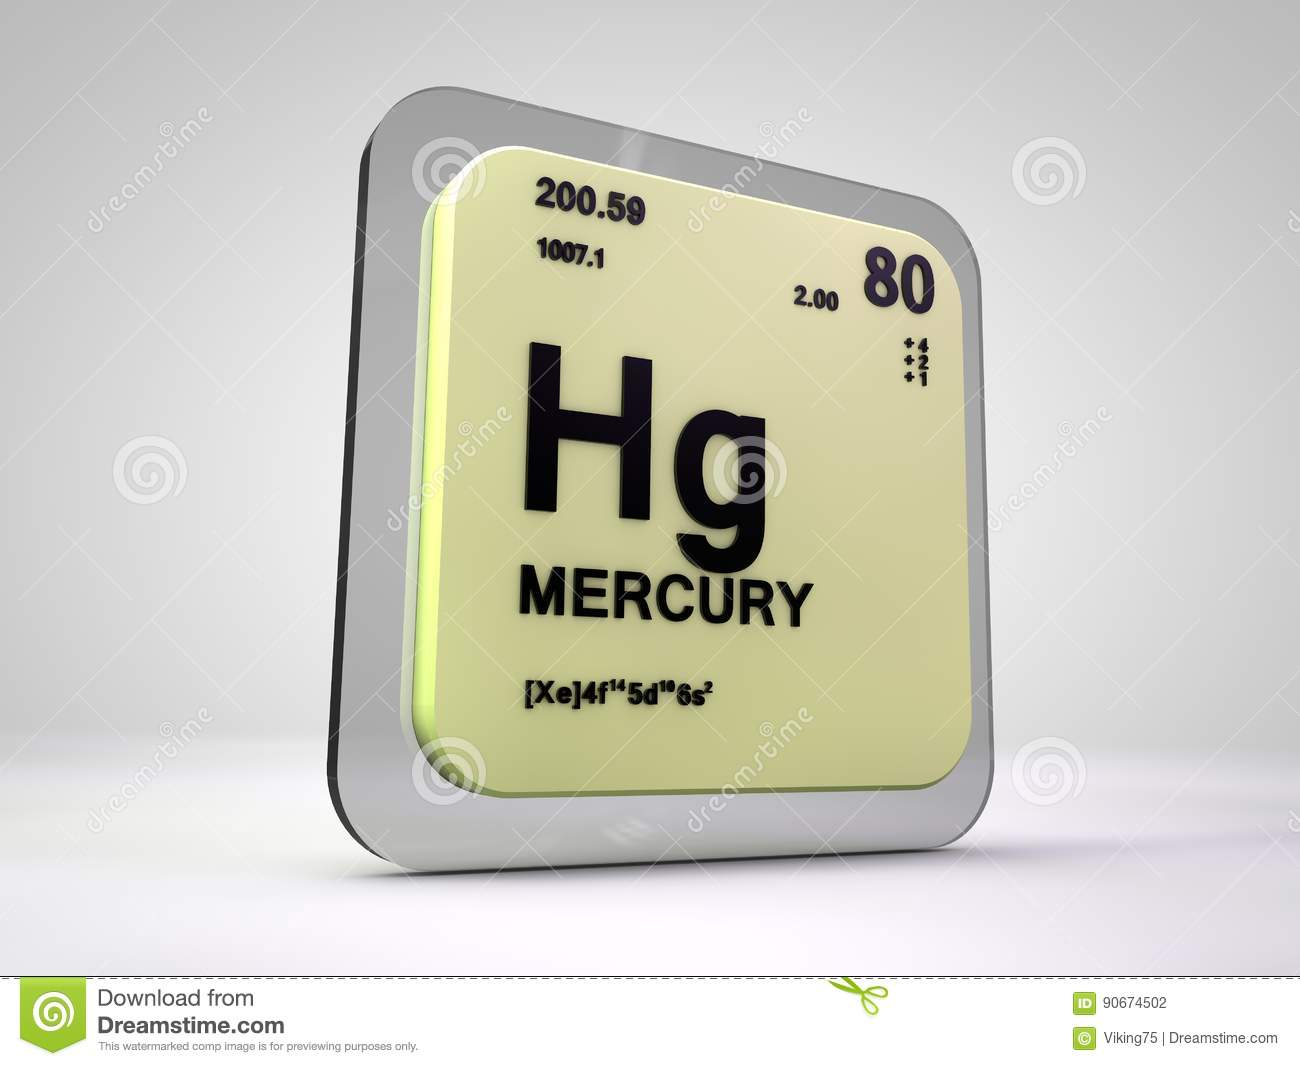 Mercury hg chemical element periodic table stock illustration mercury hg chemical element periodic table urtaz Image collections